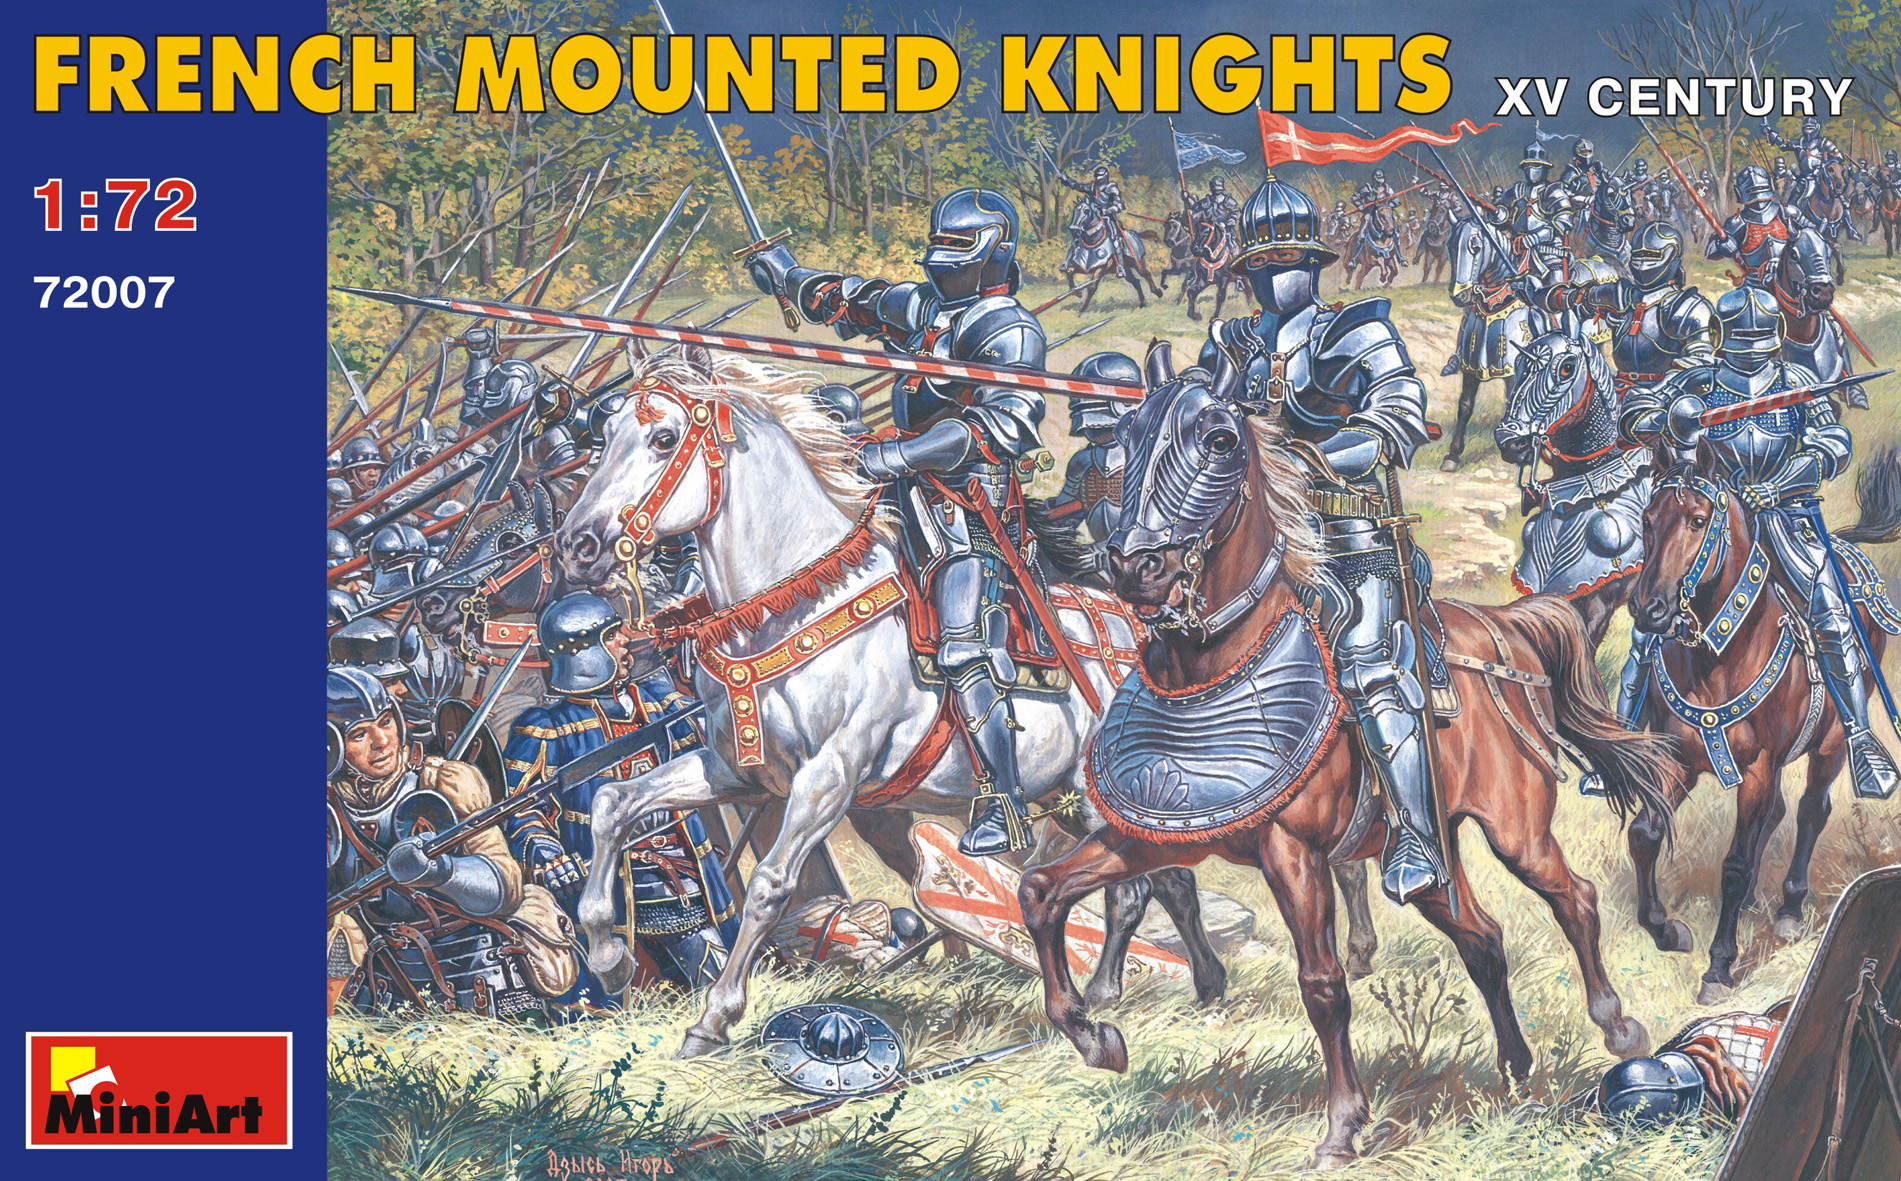 72007 FRENCH MOUNTED KNIGHTS XV CENTURY